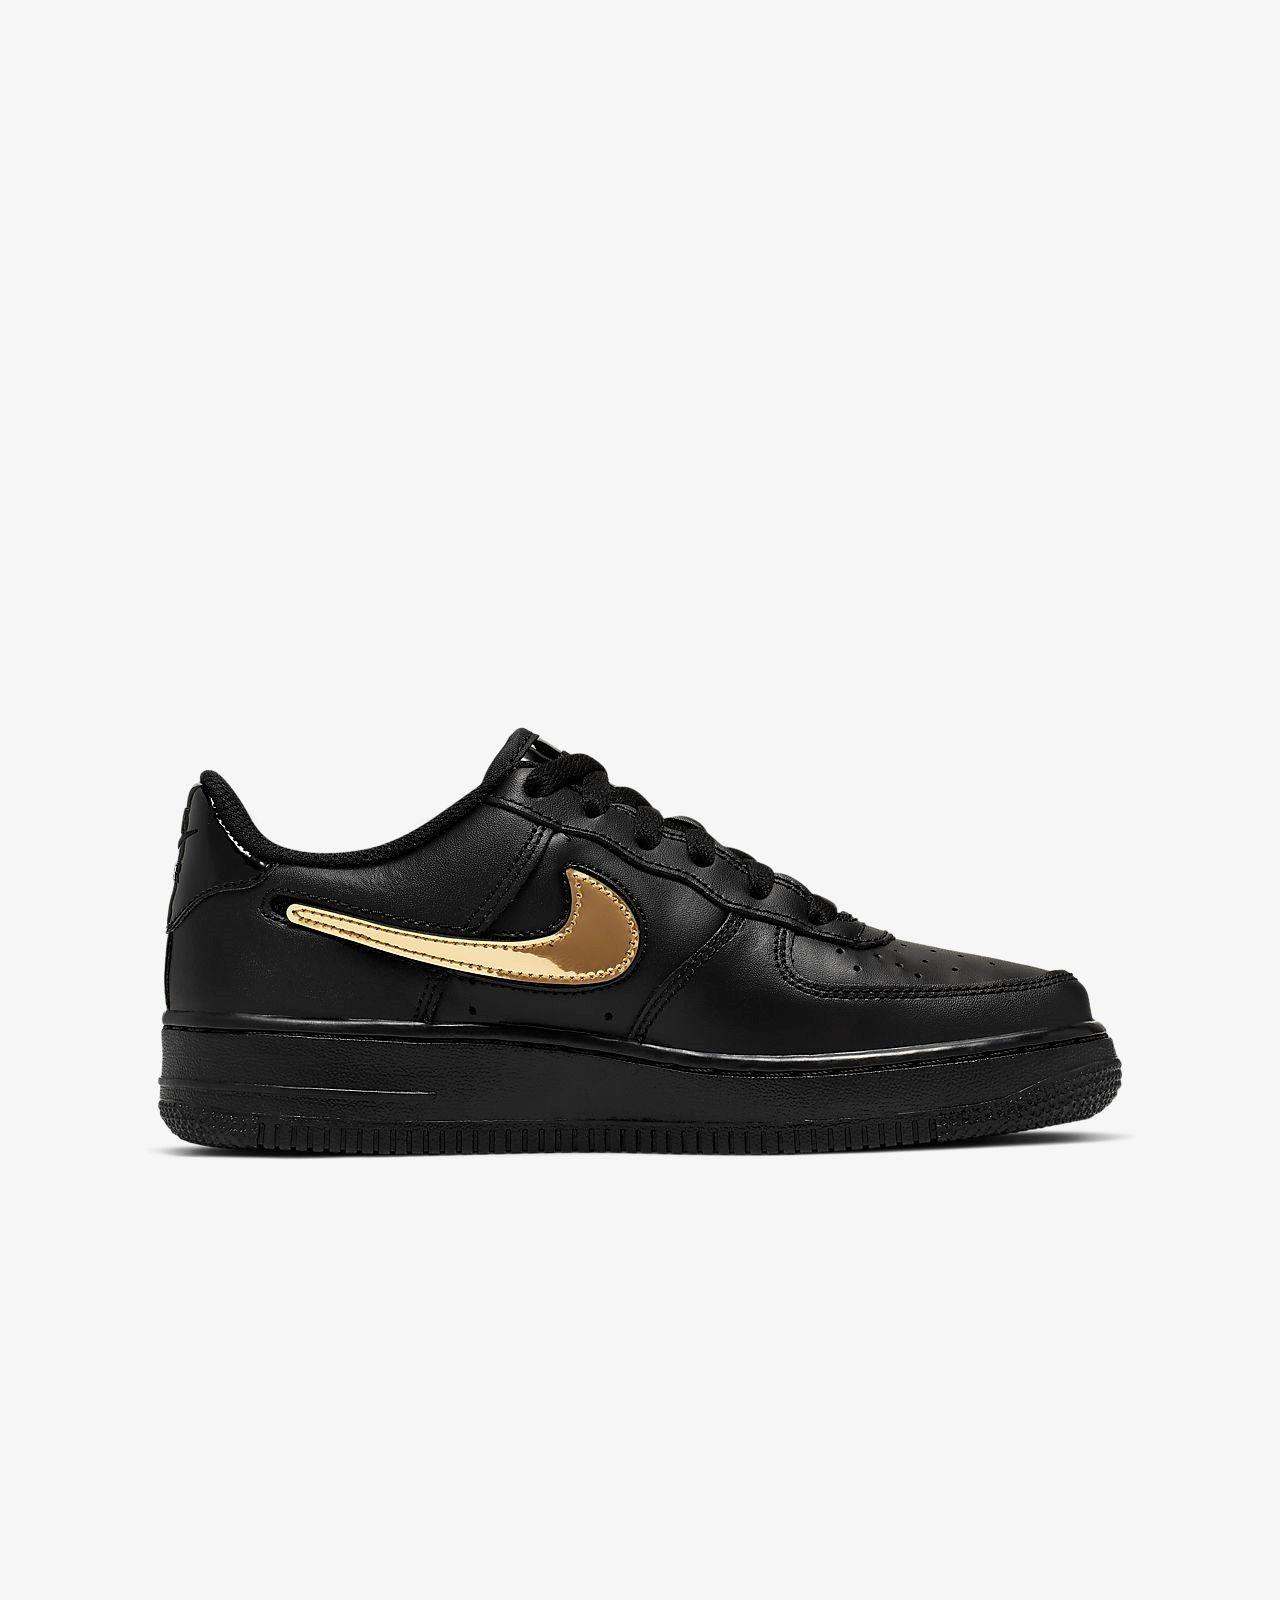 Womens Nike Air Force 1 Lv8 Black White Uk Size 3.5